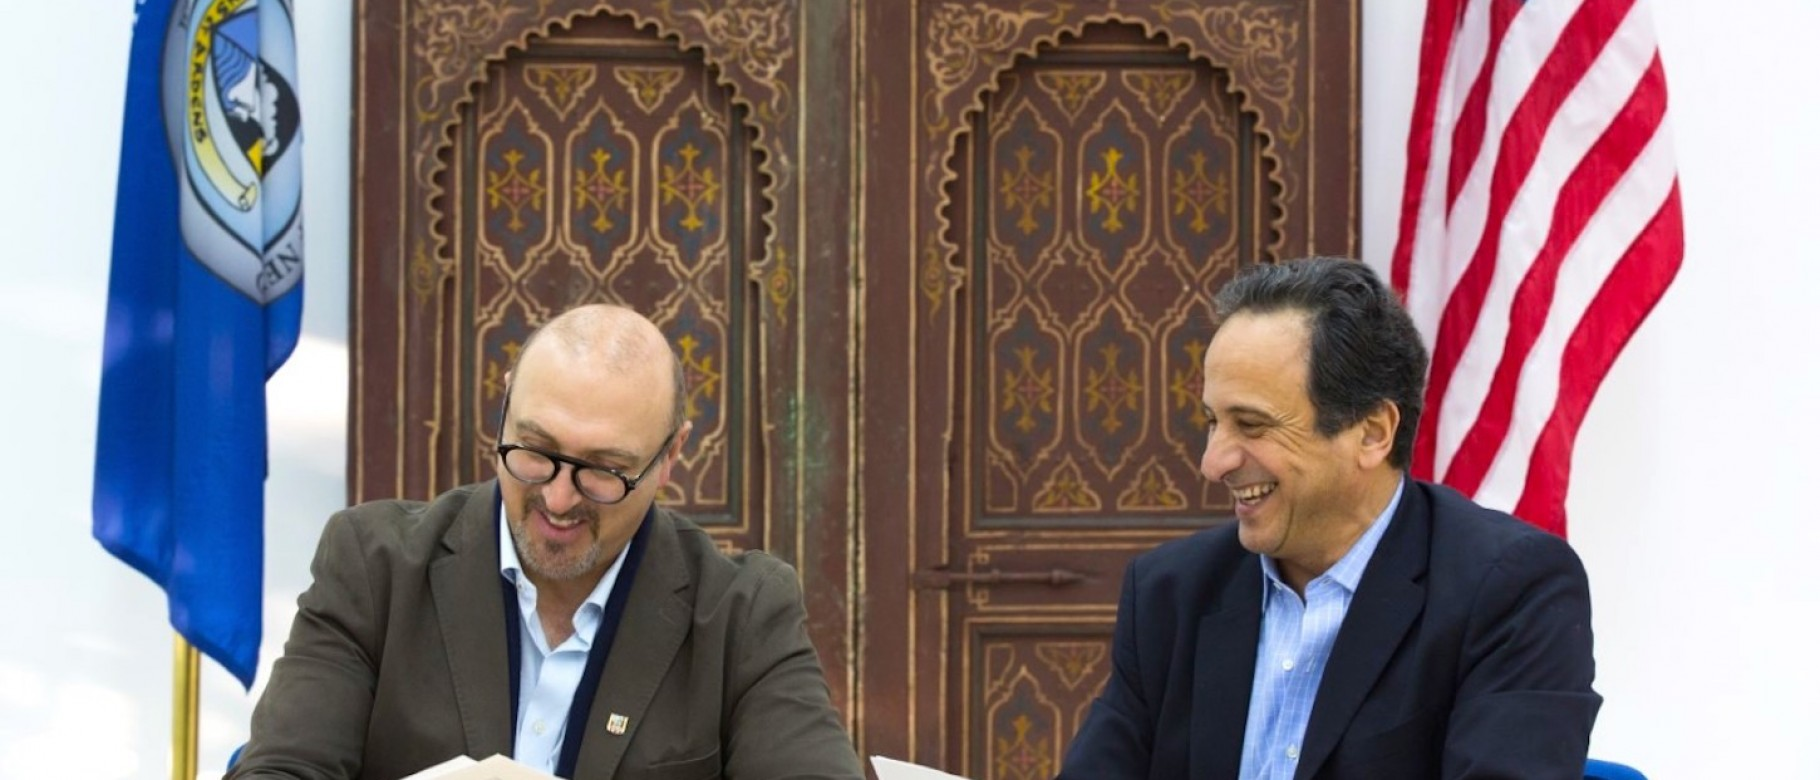 Anouar Majid, Ph.D., and Carl Jubran, Ph.D. sign a study abroad agreement